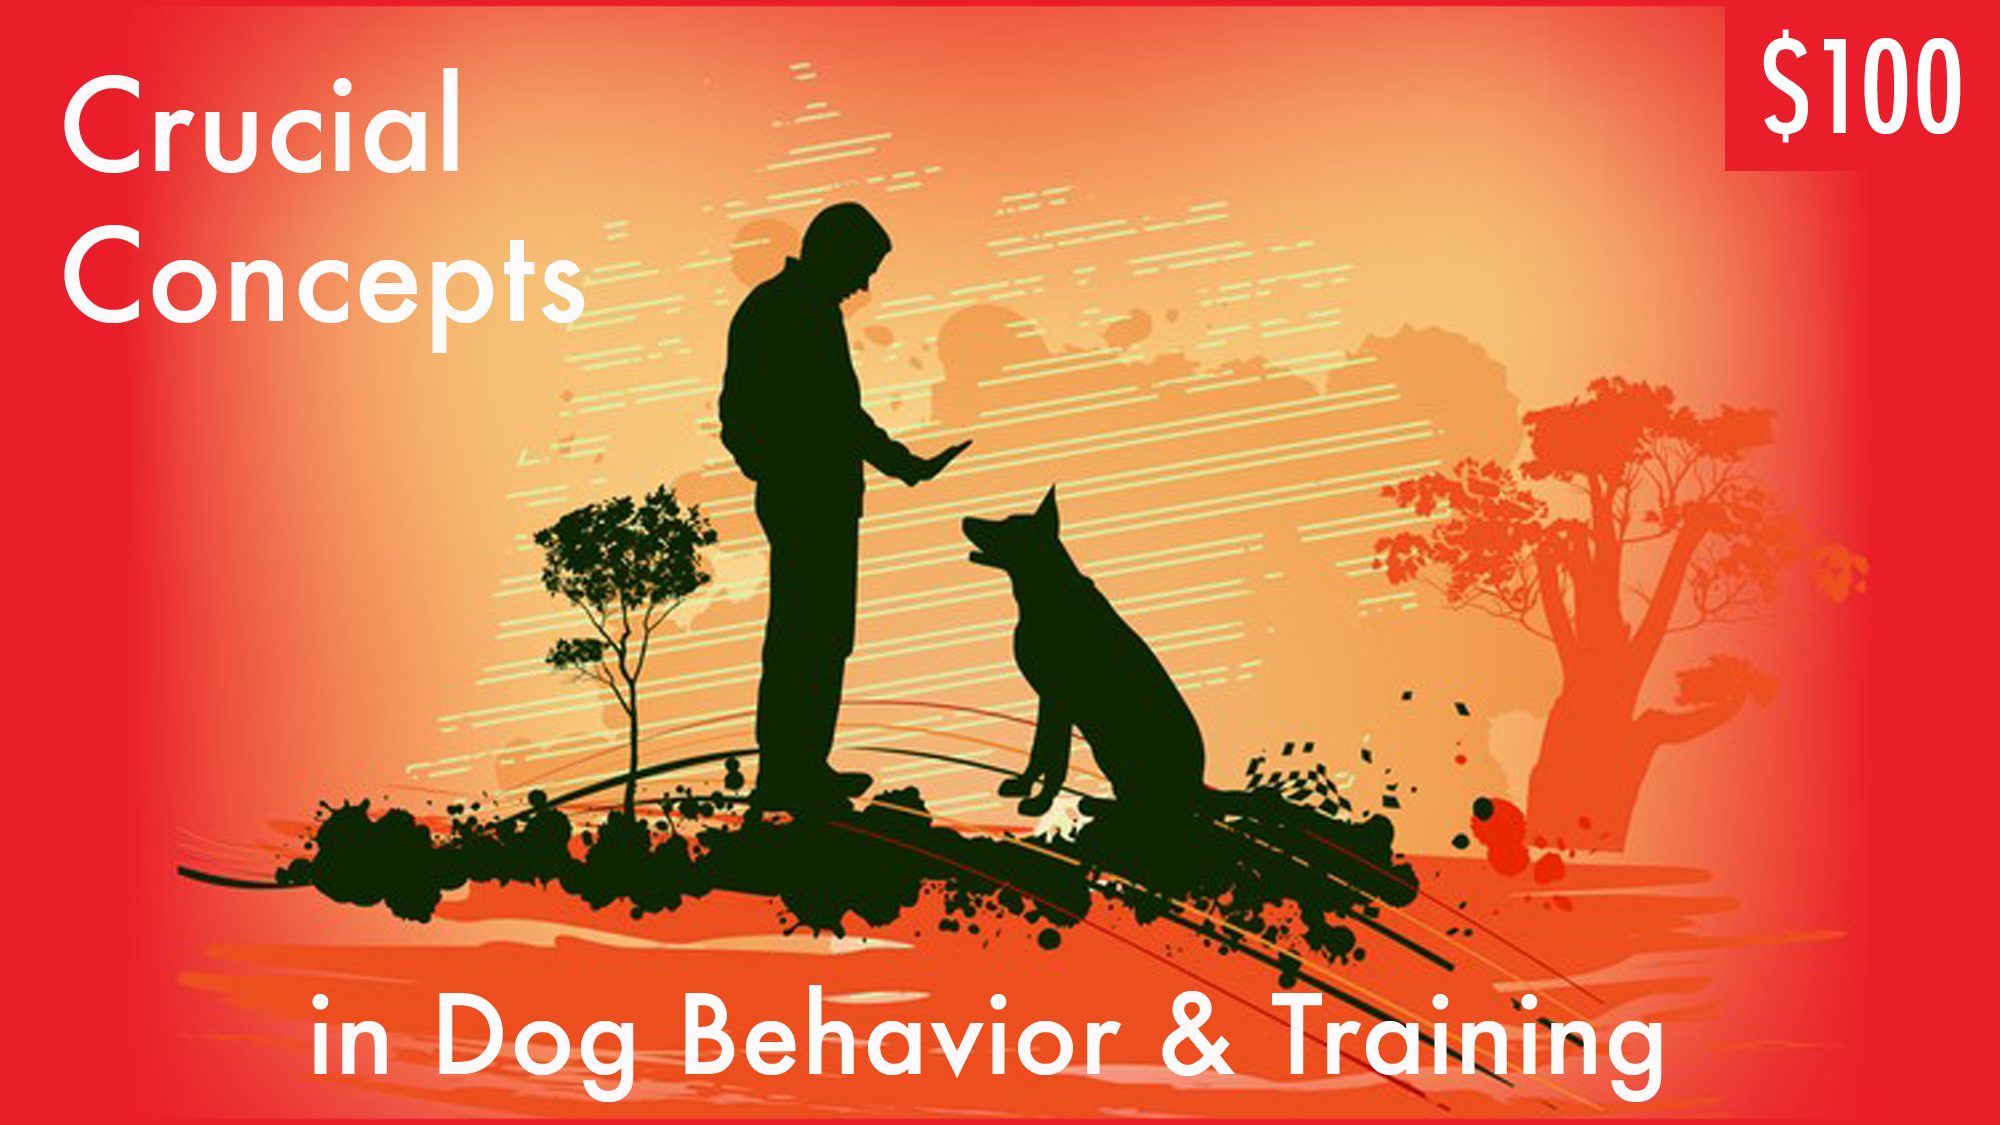 Lecture seminar by Dr. Ian Dunbar. Learn cutting edge and common sense concepts that make dog training incredibly easy and effective. 6 hours of video, 6 CEUs,$100 on Udemy.